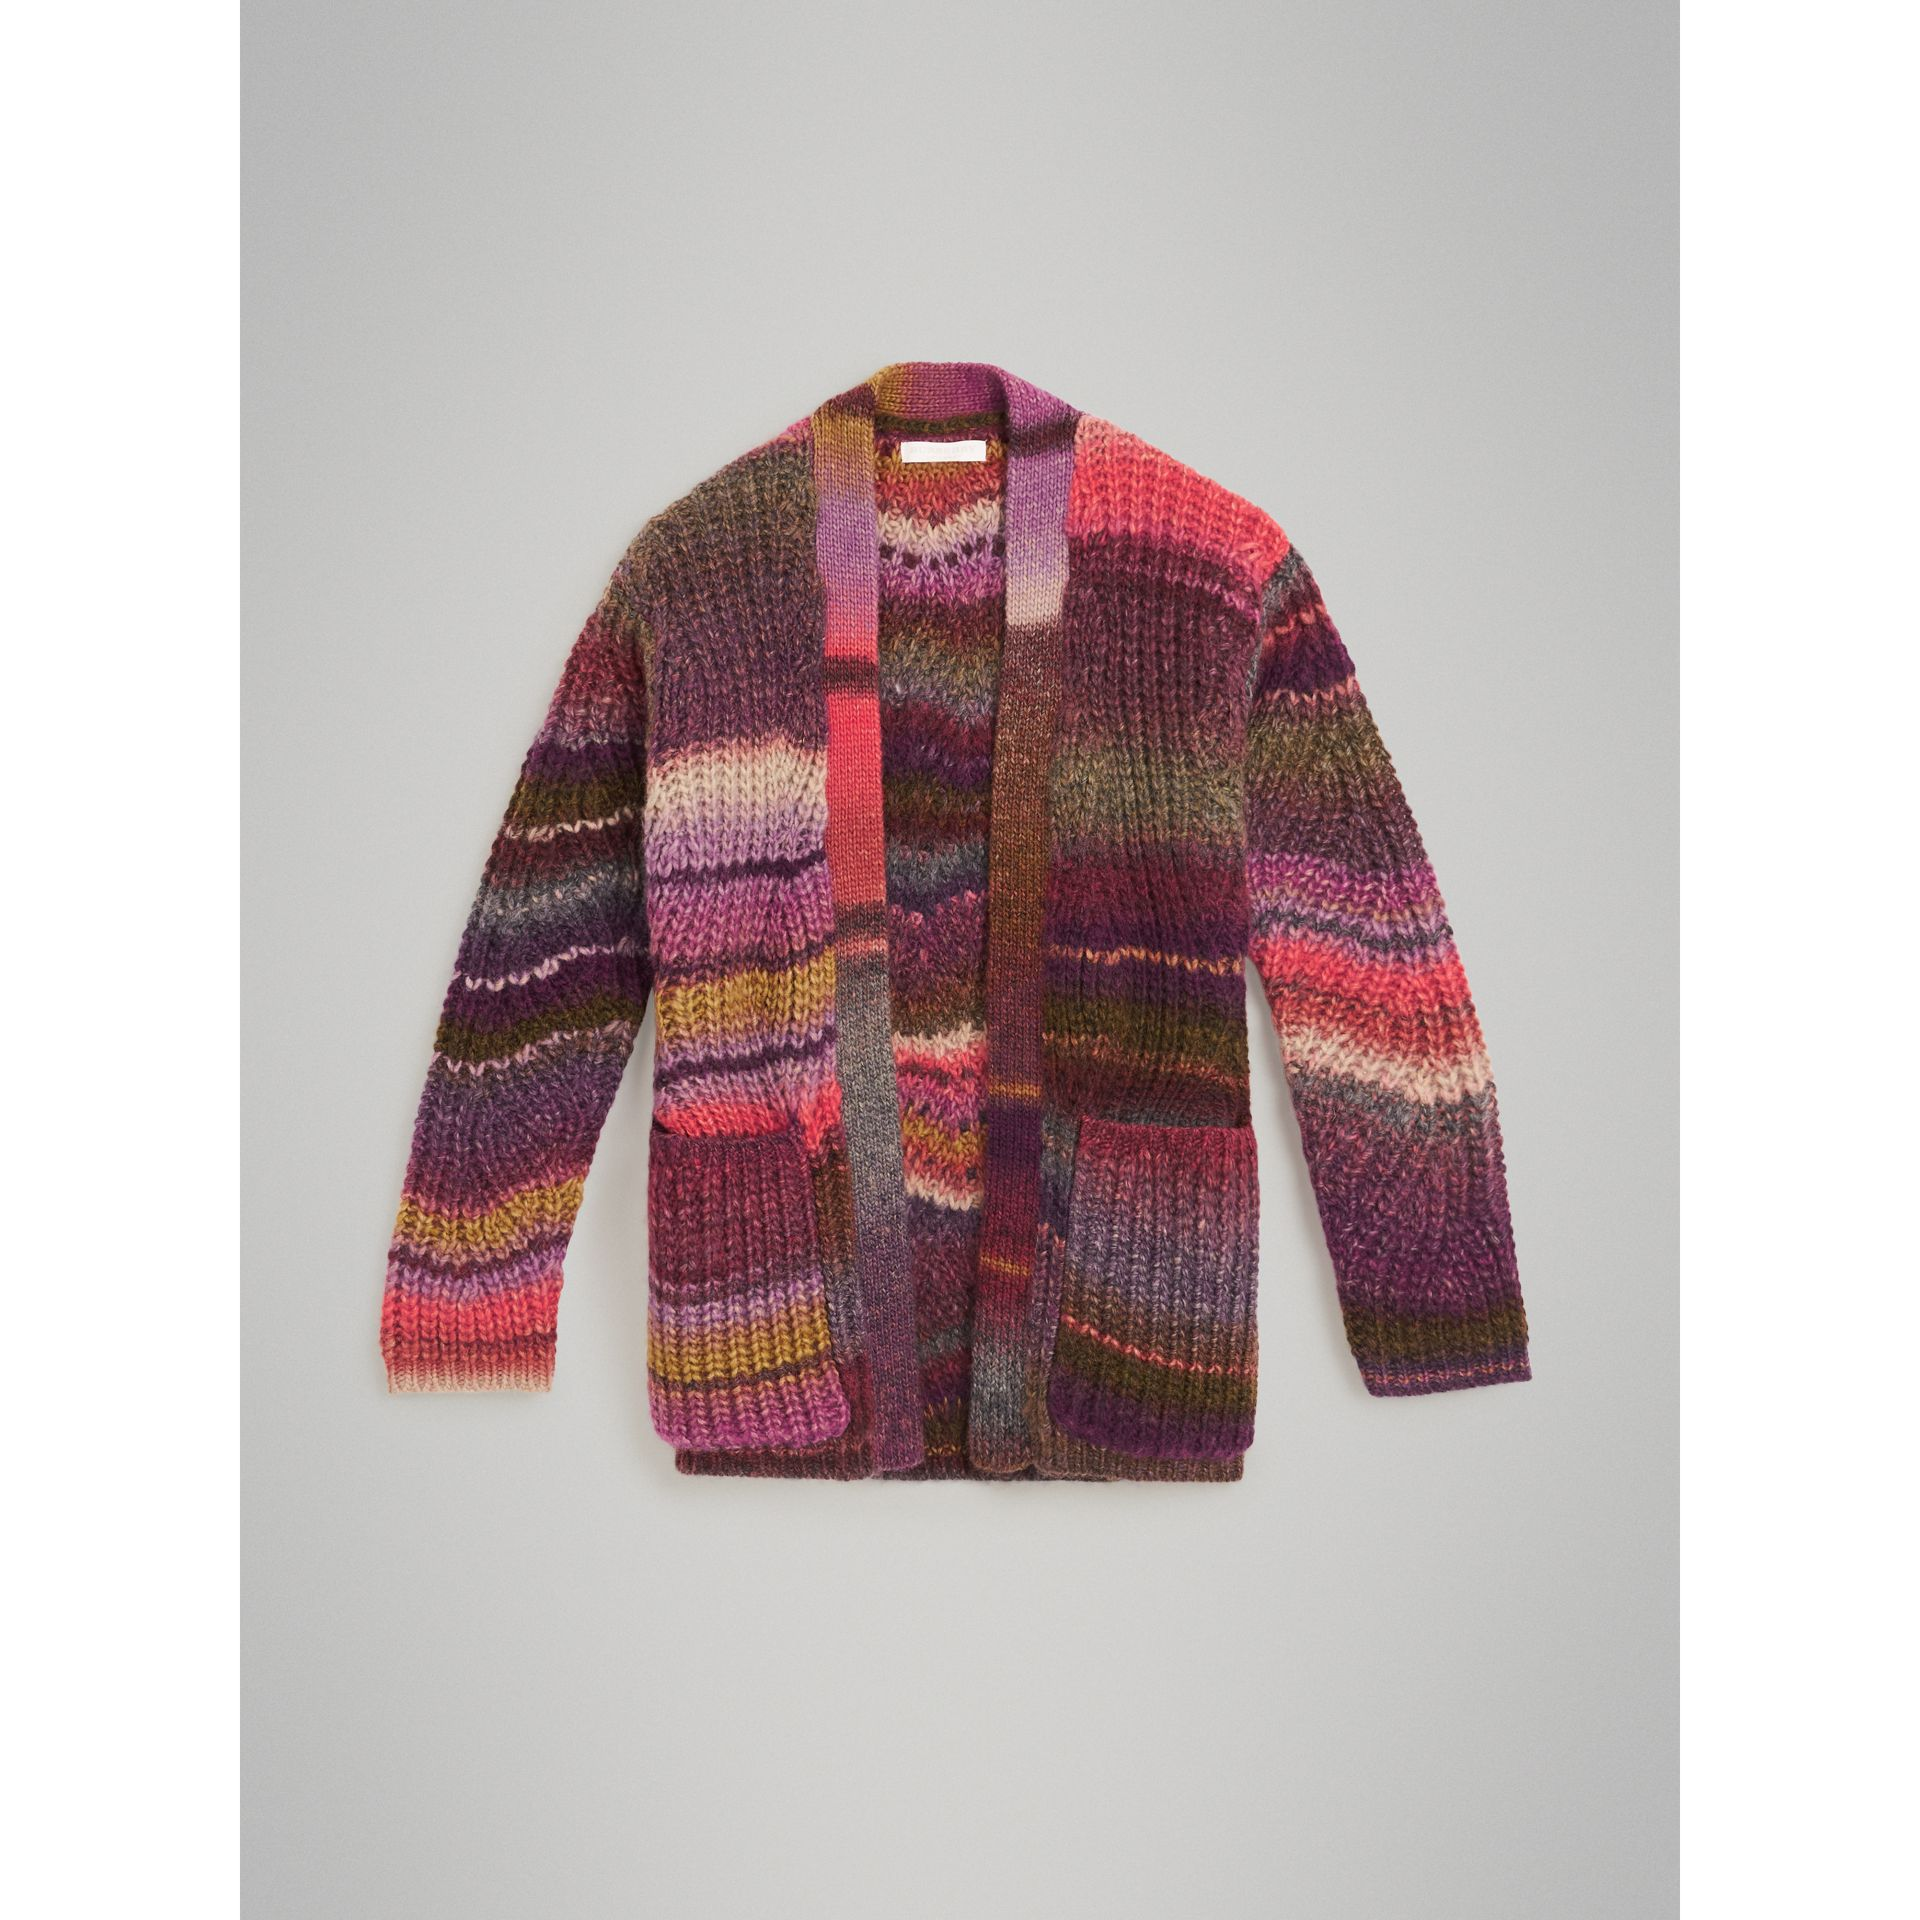 Rib Knit Wool Blend Cardigan in Multicolour | Burberry - gallery image 0